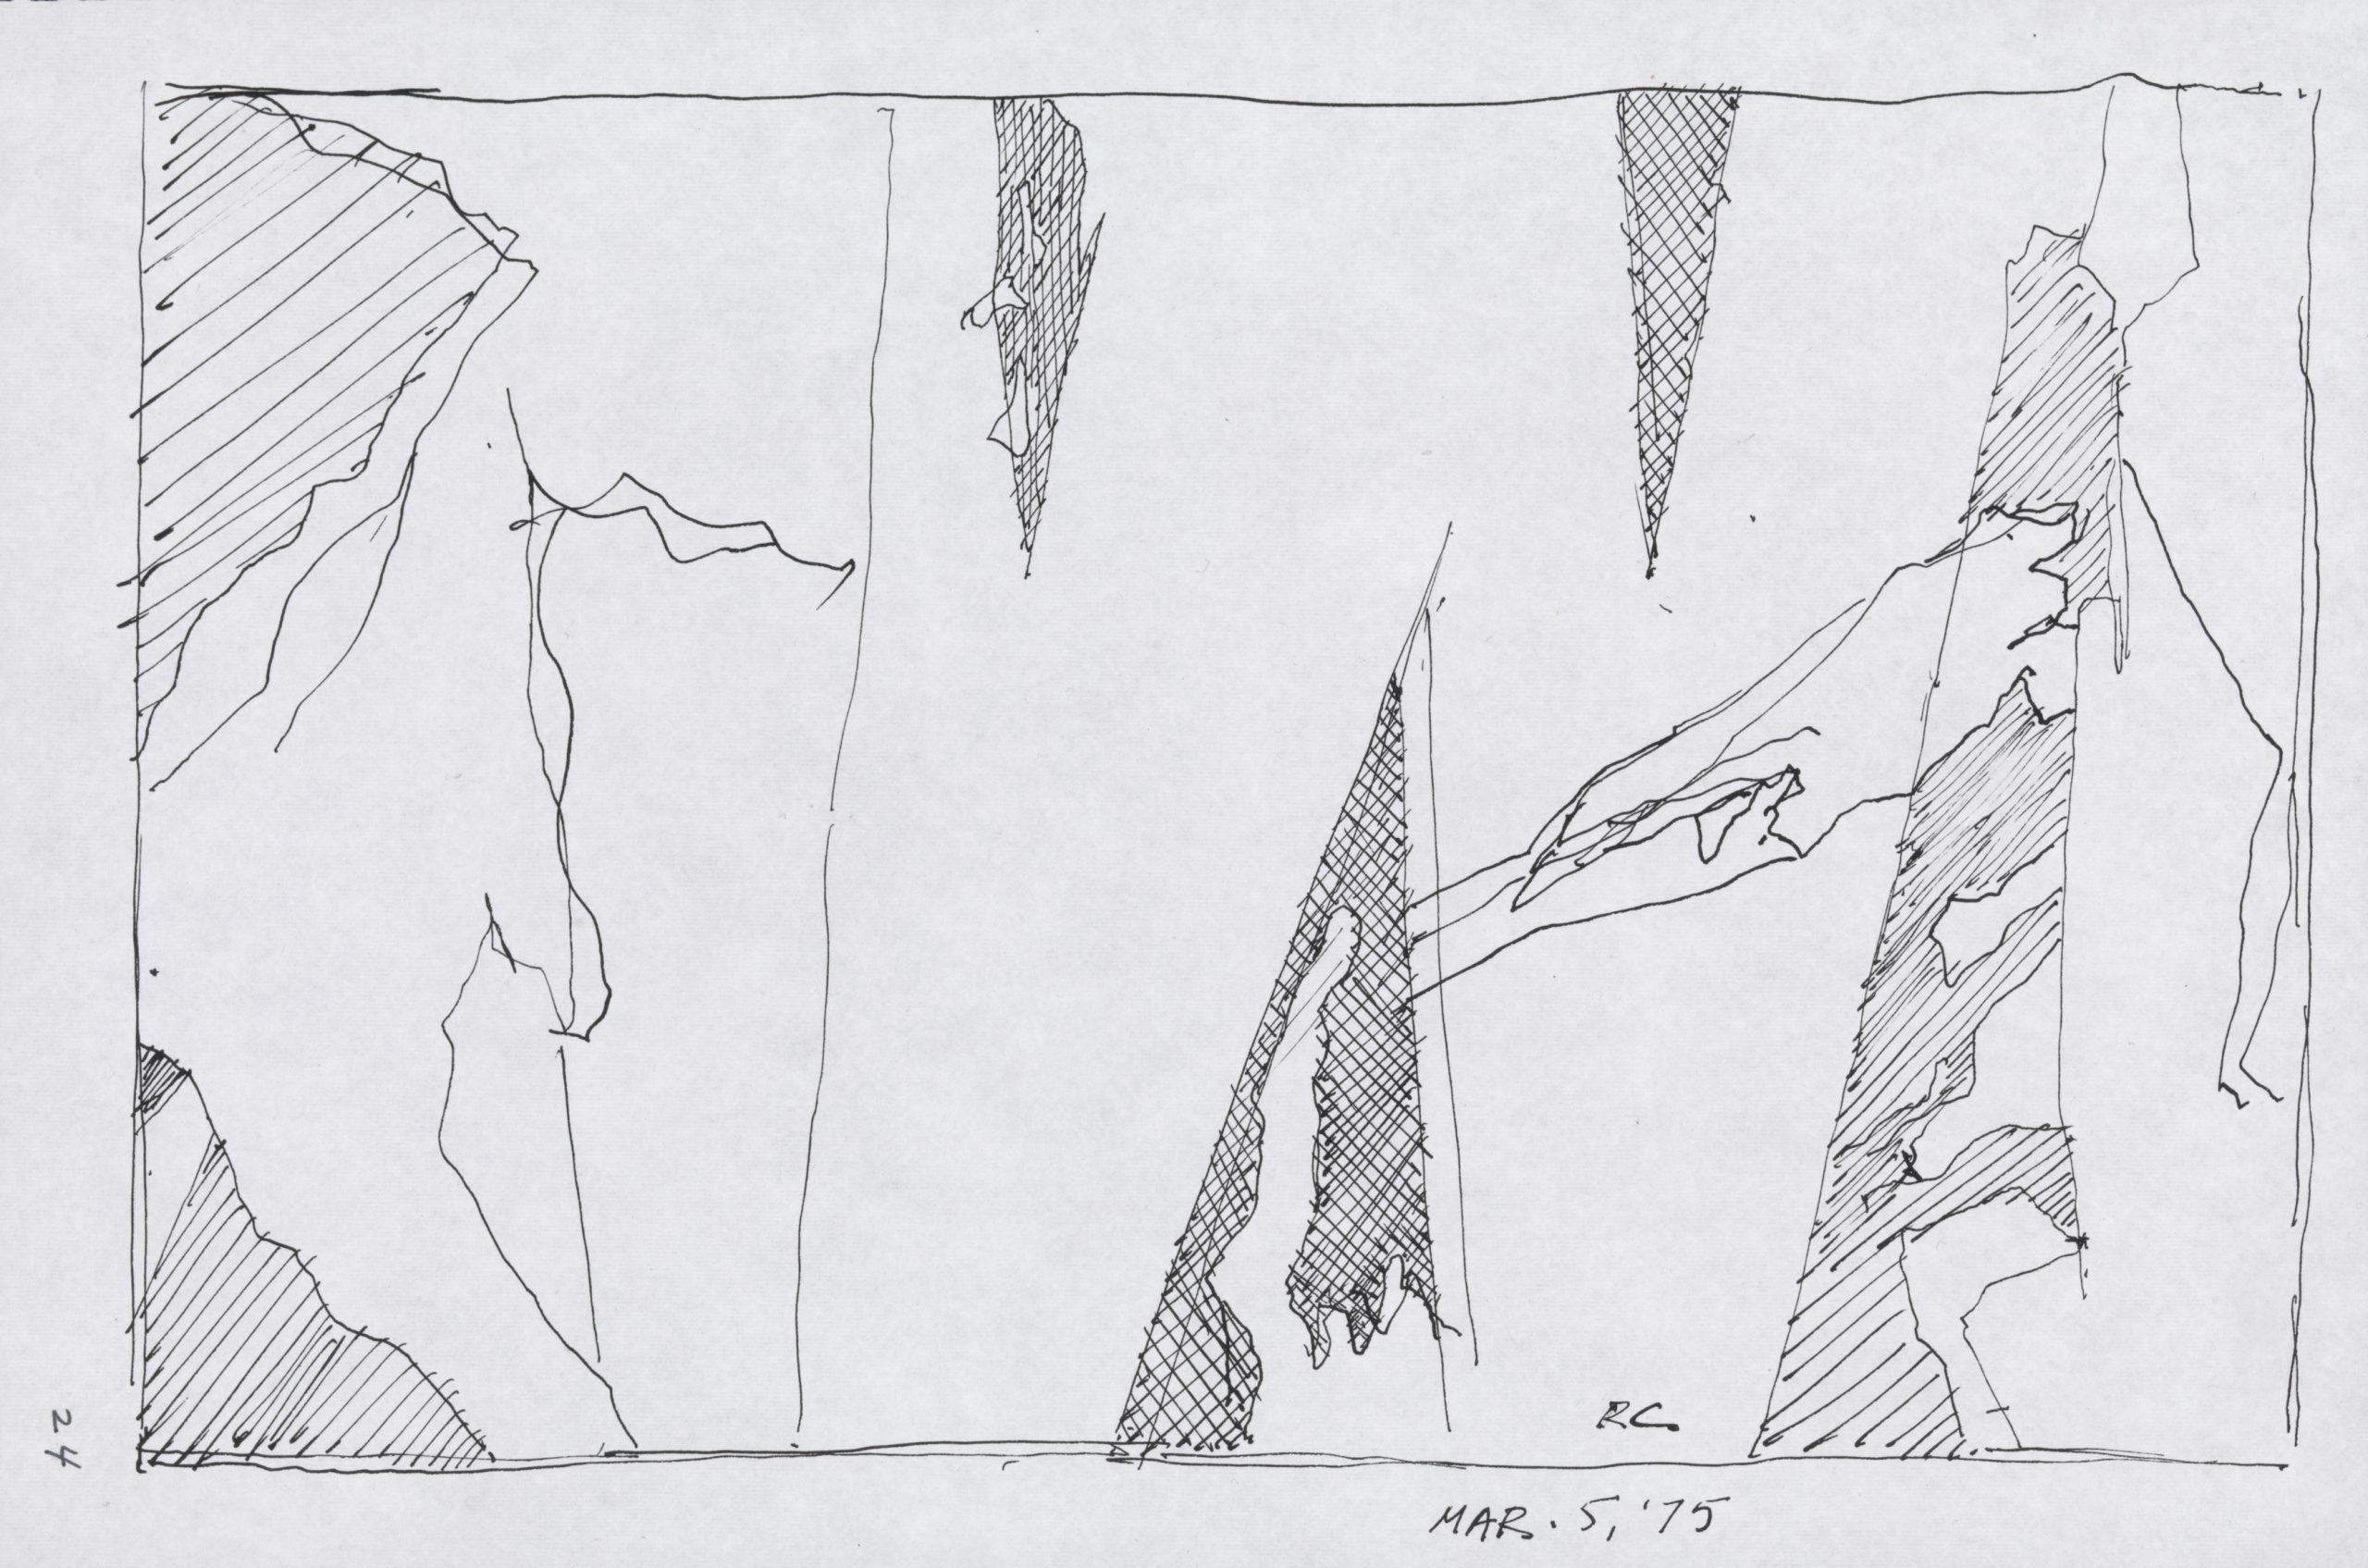 Ink sketch of a torn sign with triangular tears, detailed with cross-hatching in ink.